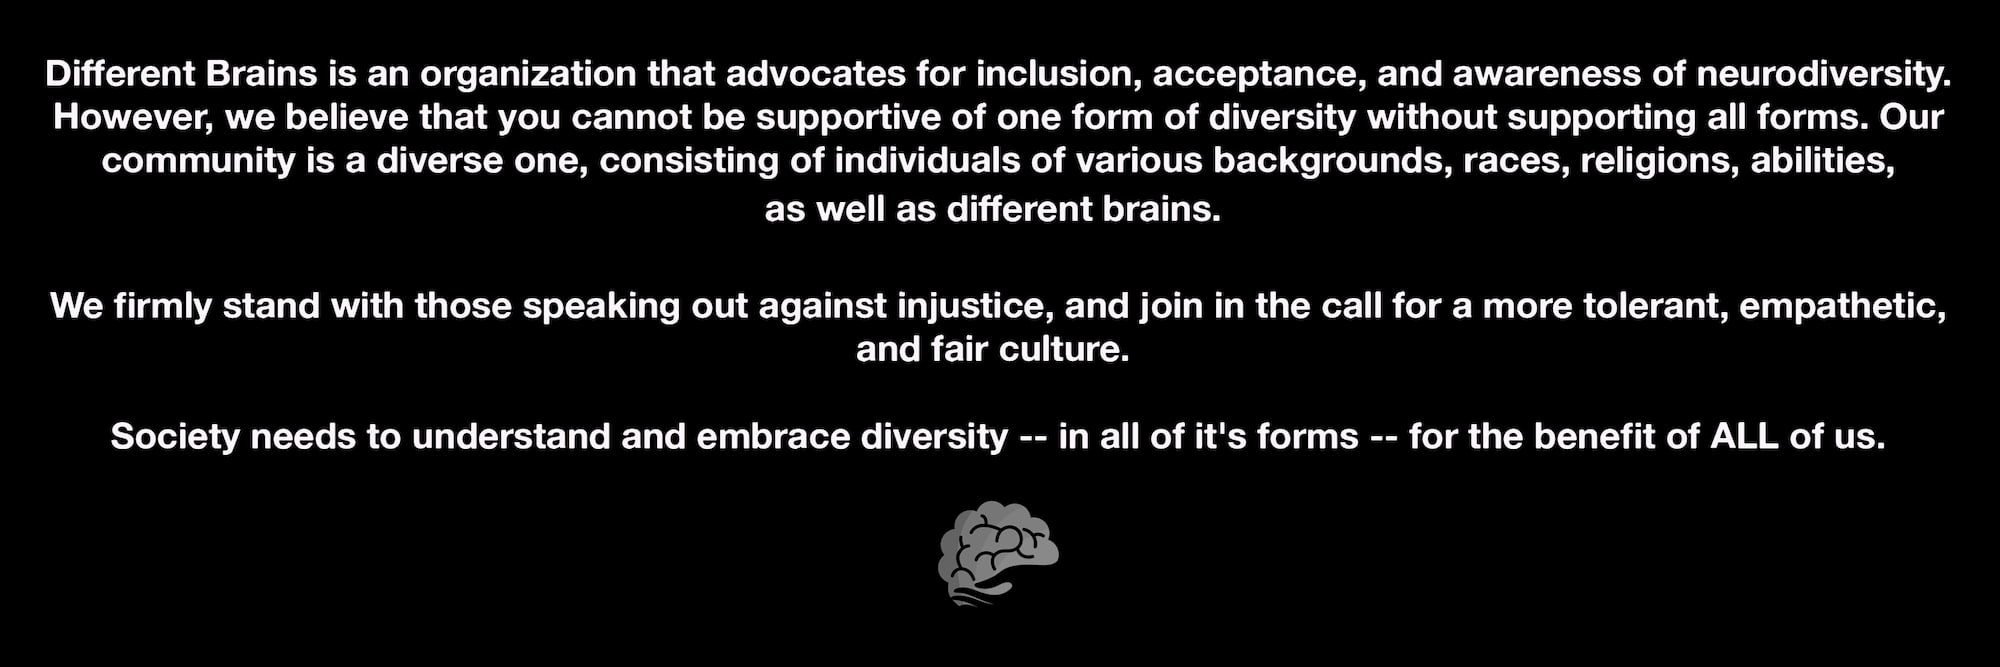 Different Brains firmlys stand with those speaking out against injustice, and join in the call for a more tolerant, empathetic, and fair culture.